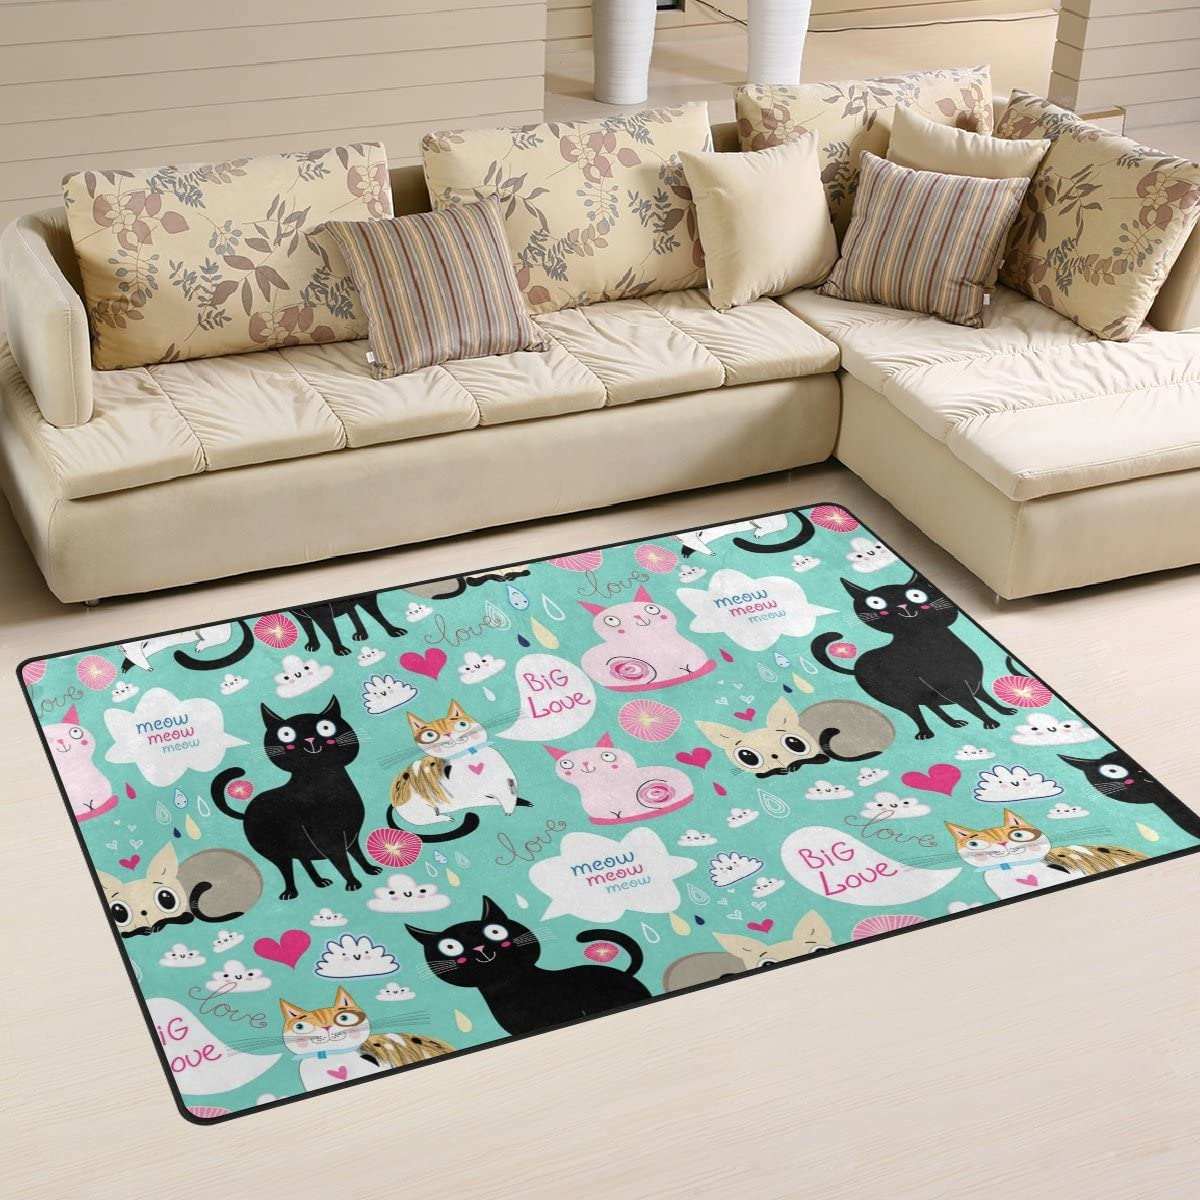 Yochoice Non-slip Area Rugs Home Decor, Vintage Colorful Cute Funny Lovers Cat Floor Mat Living Room Bedroom Carpets Doormats 60 x 39 inches